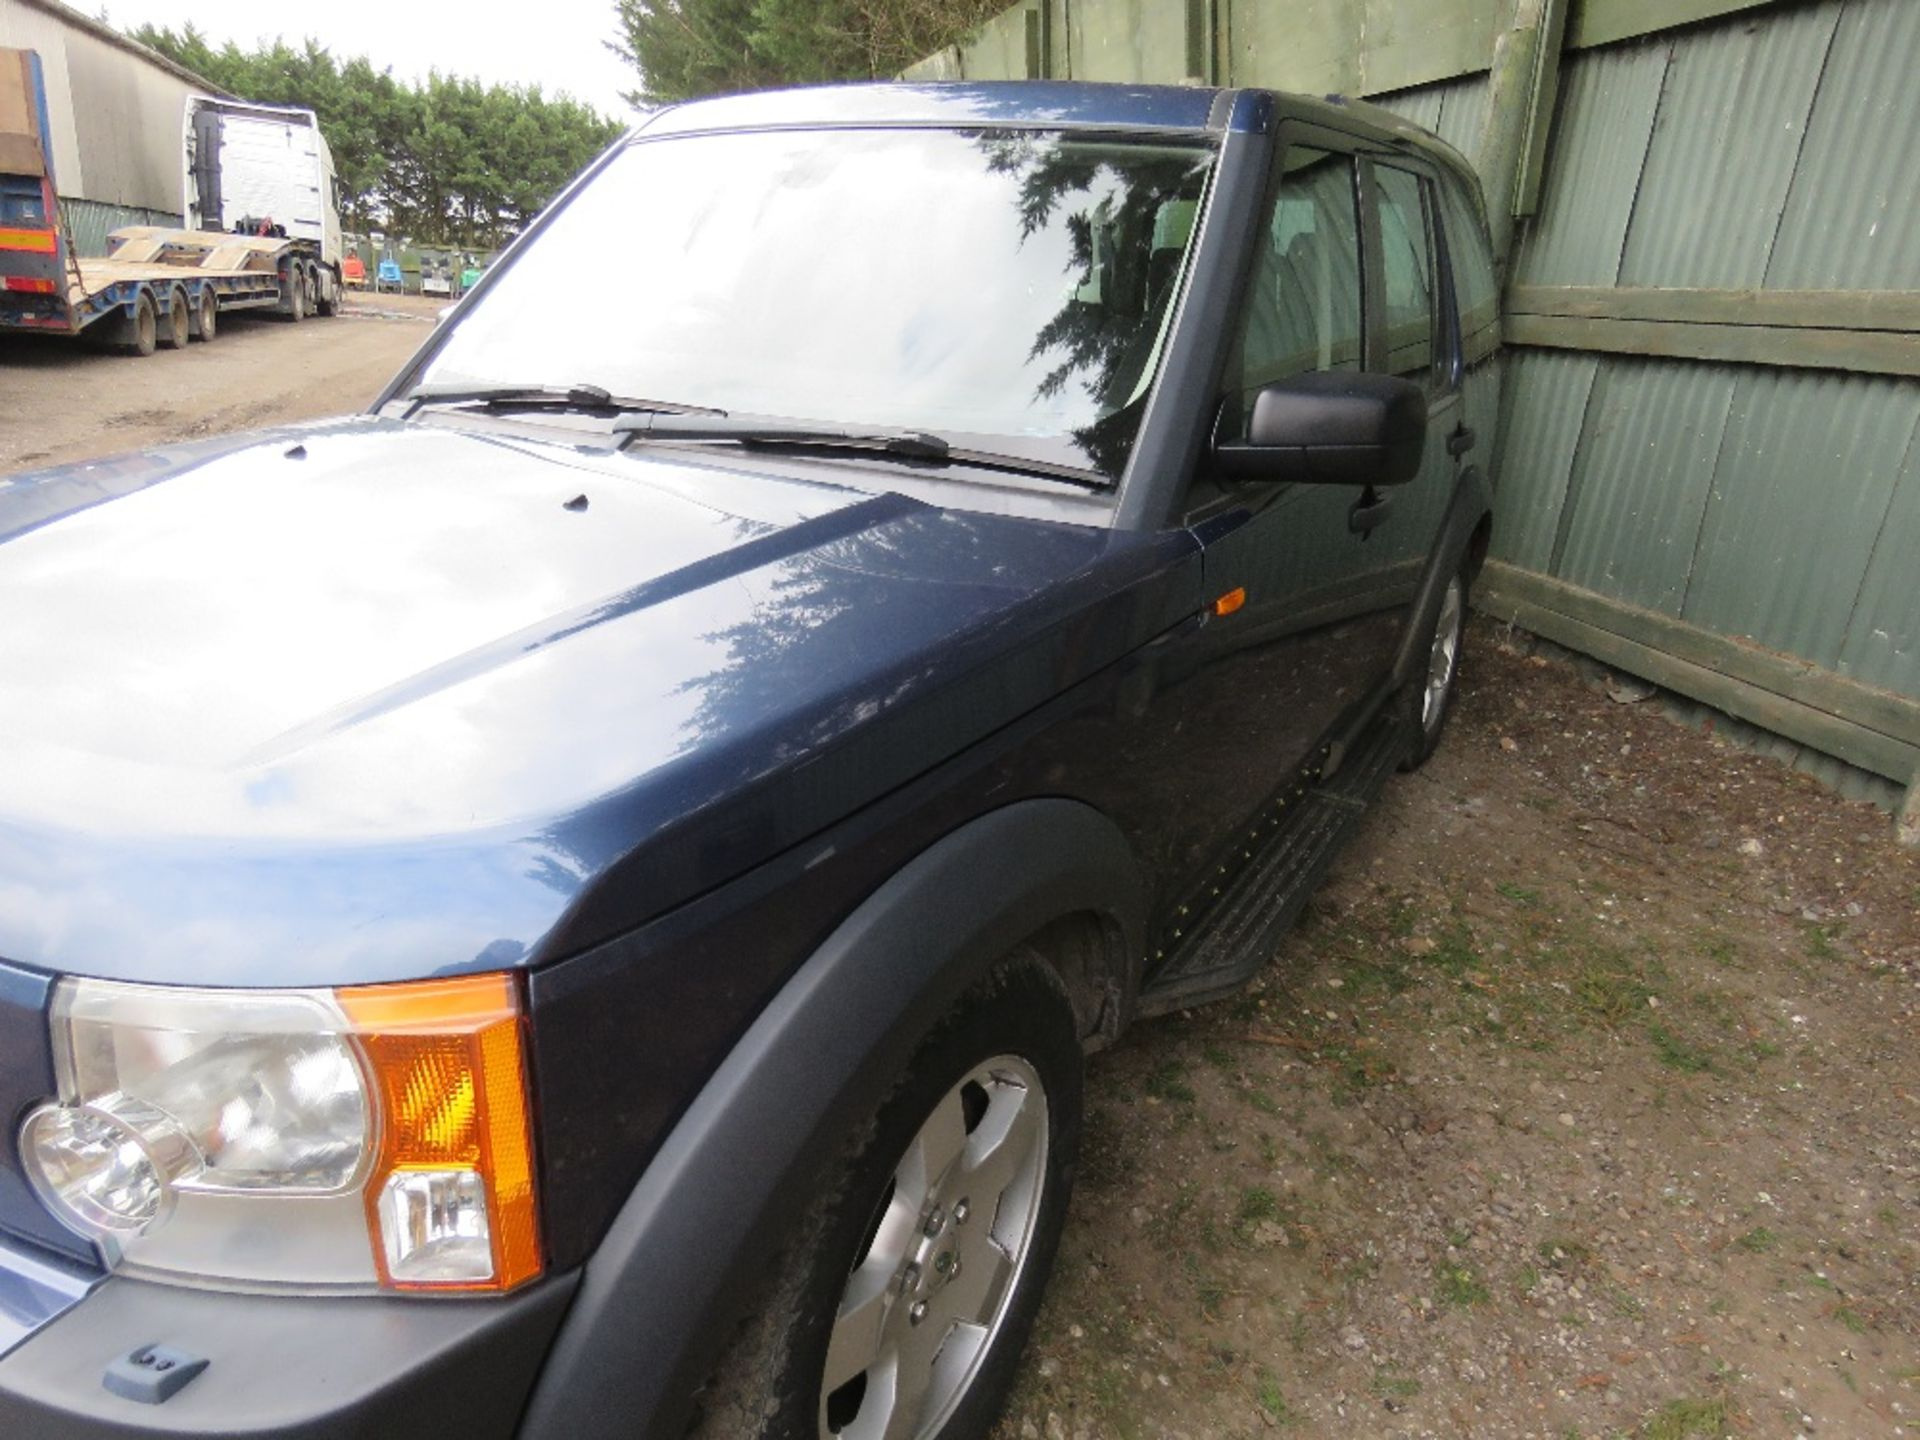 Lot 1746 - LANDROVER DISCOVERY 3 4X4 CAR, 7 SEATS, AUTOMATIC,